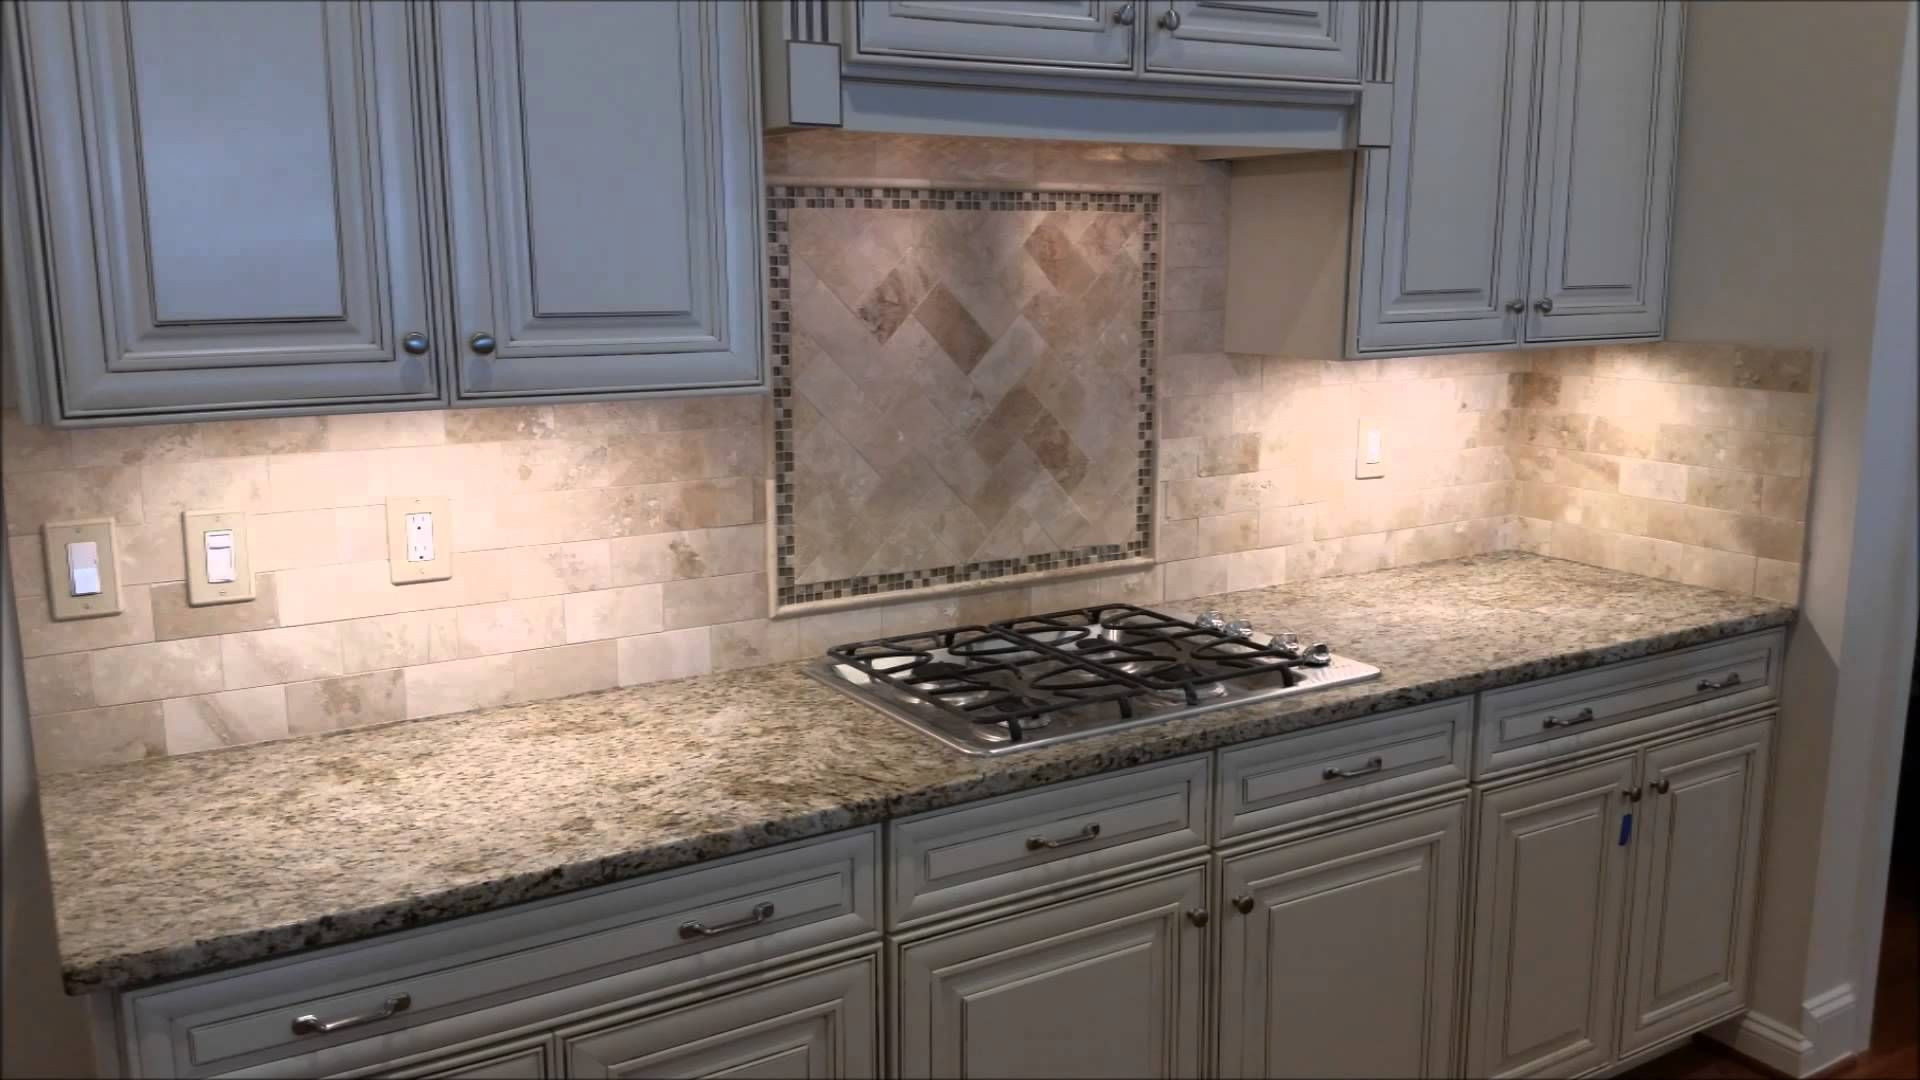 - Travertine Backsplash With Herringbone Inlay - YouTube